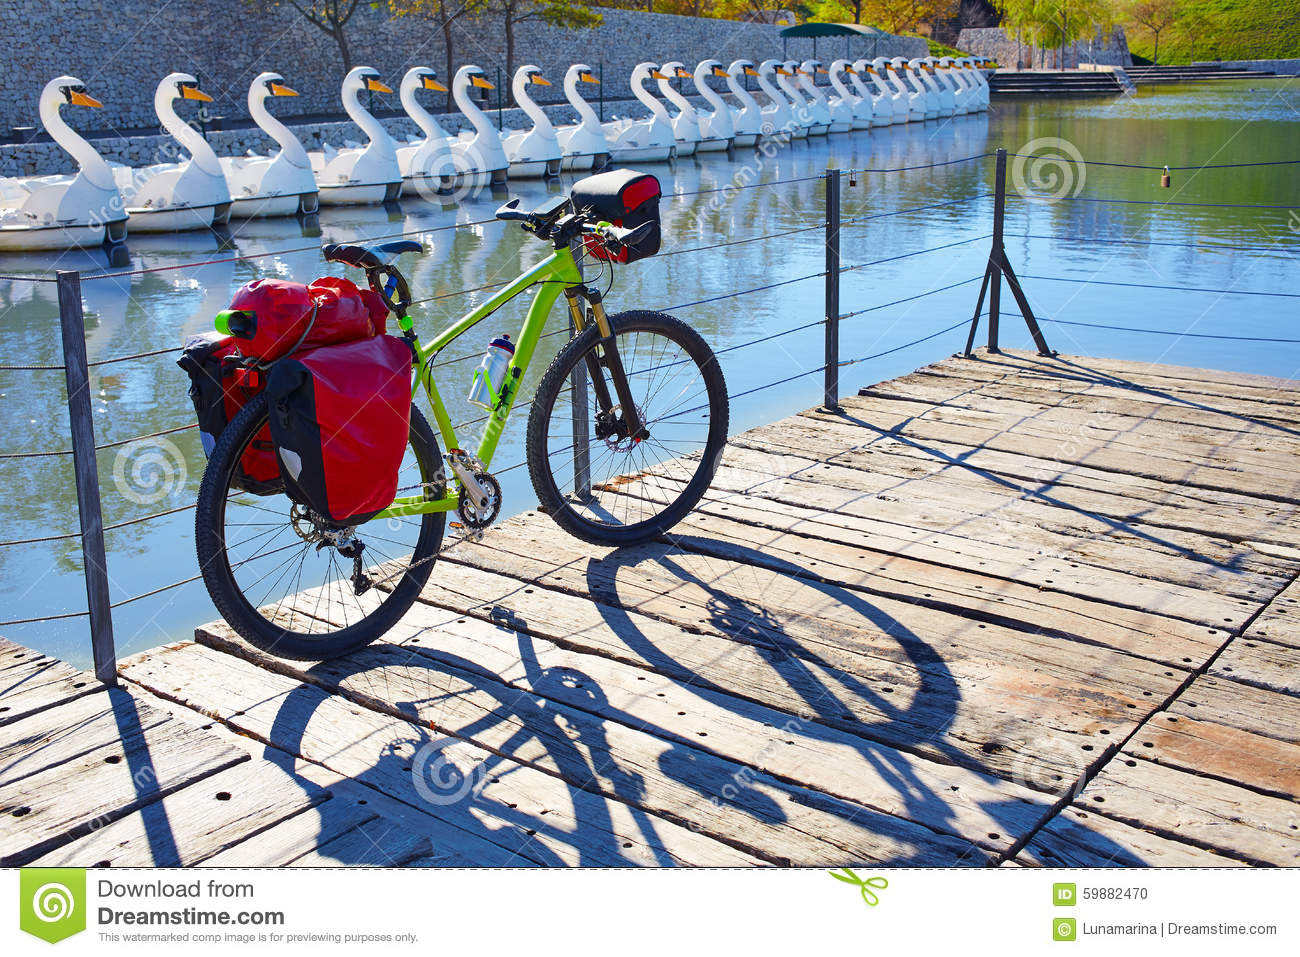 MTB Bicycle touring bike in a park with pannier